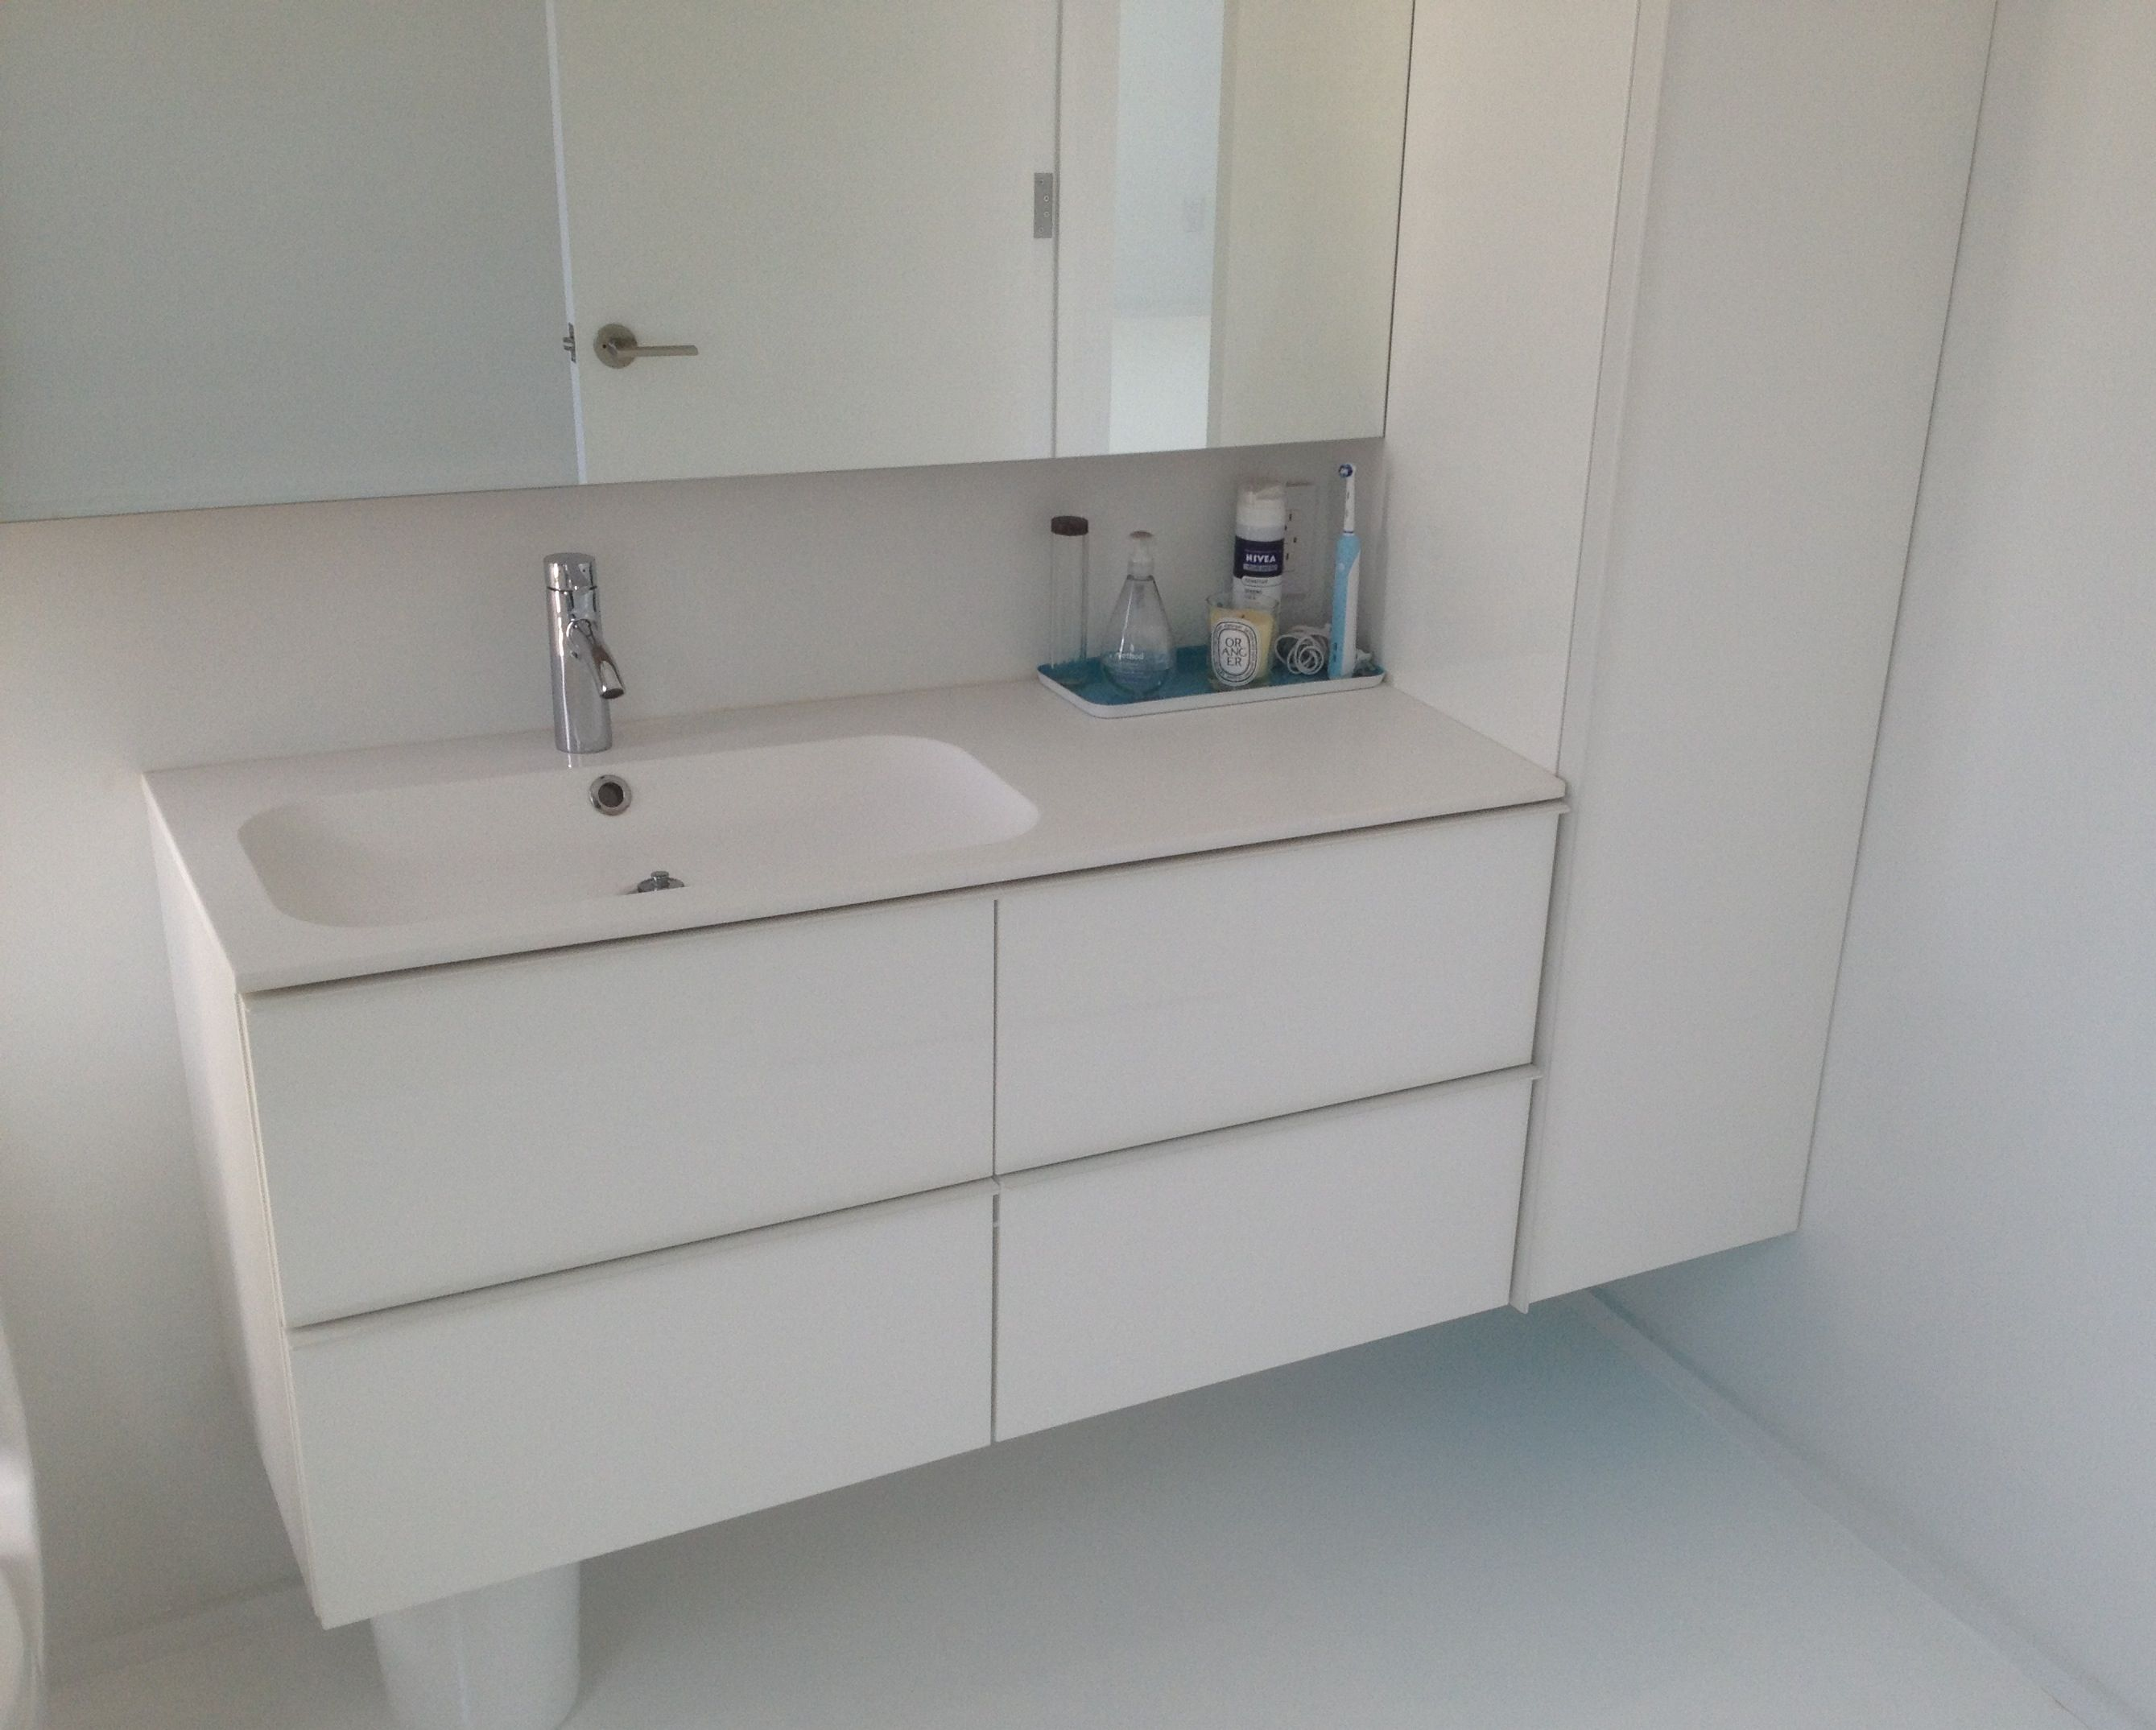 Bathroom Cabinets Over Sink Pinterdor Pinterest Modern White